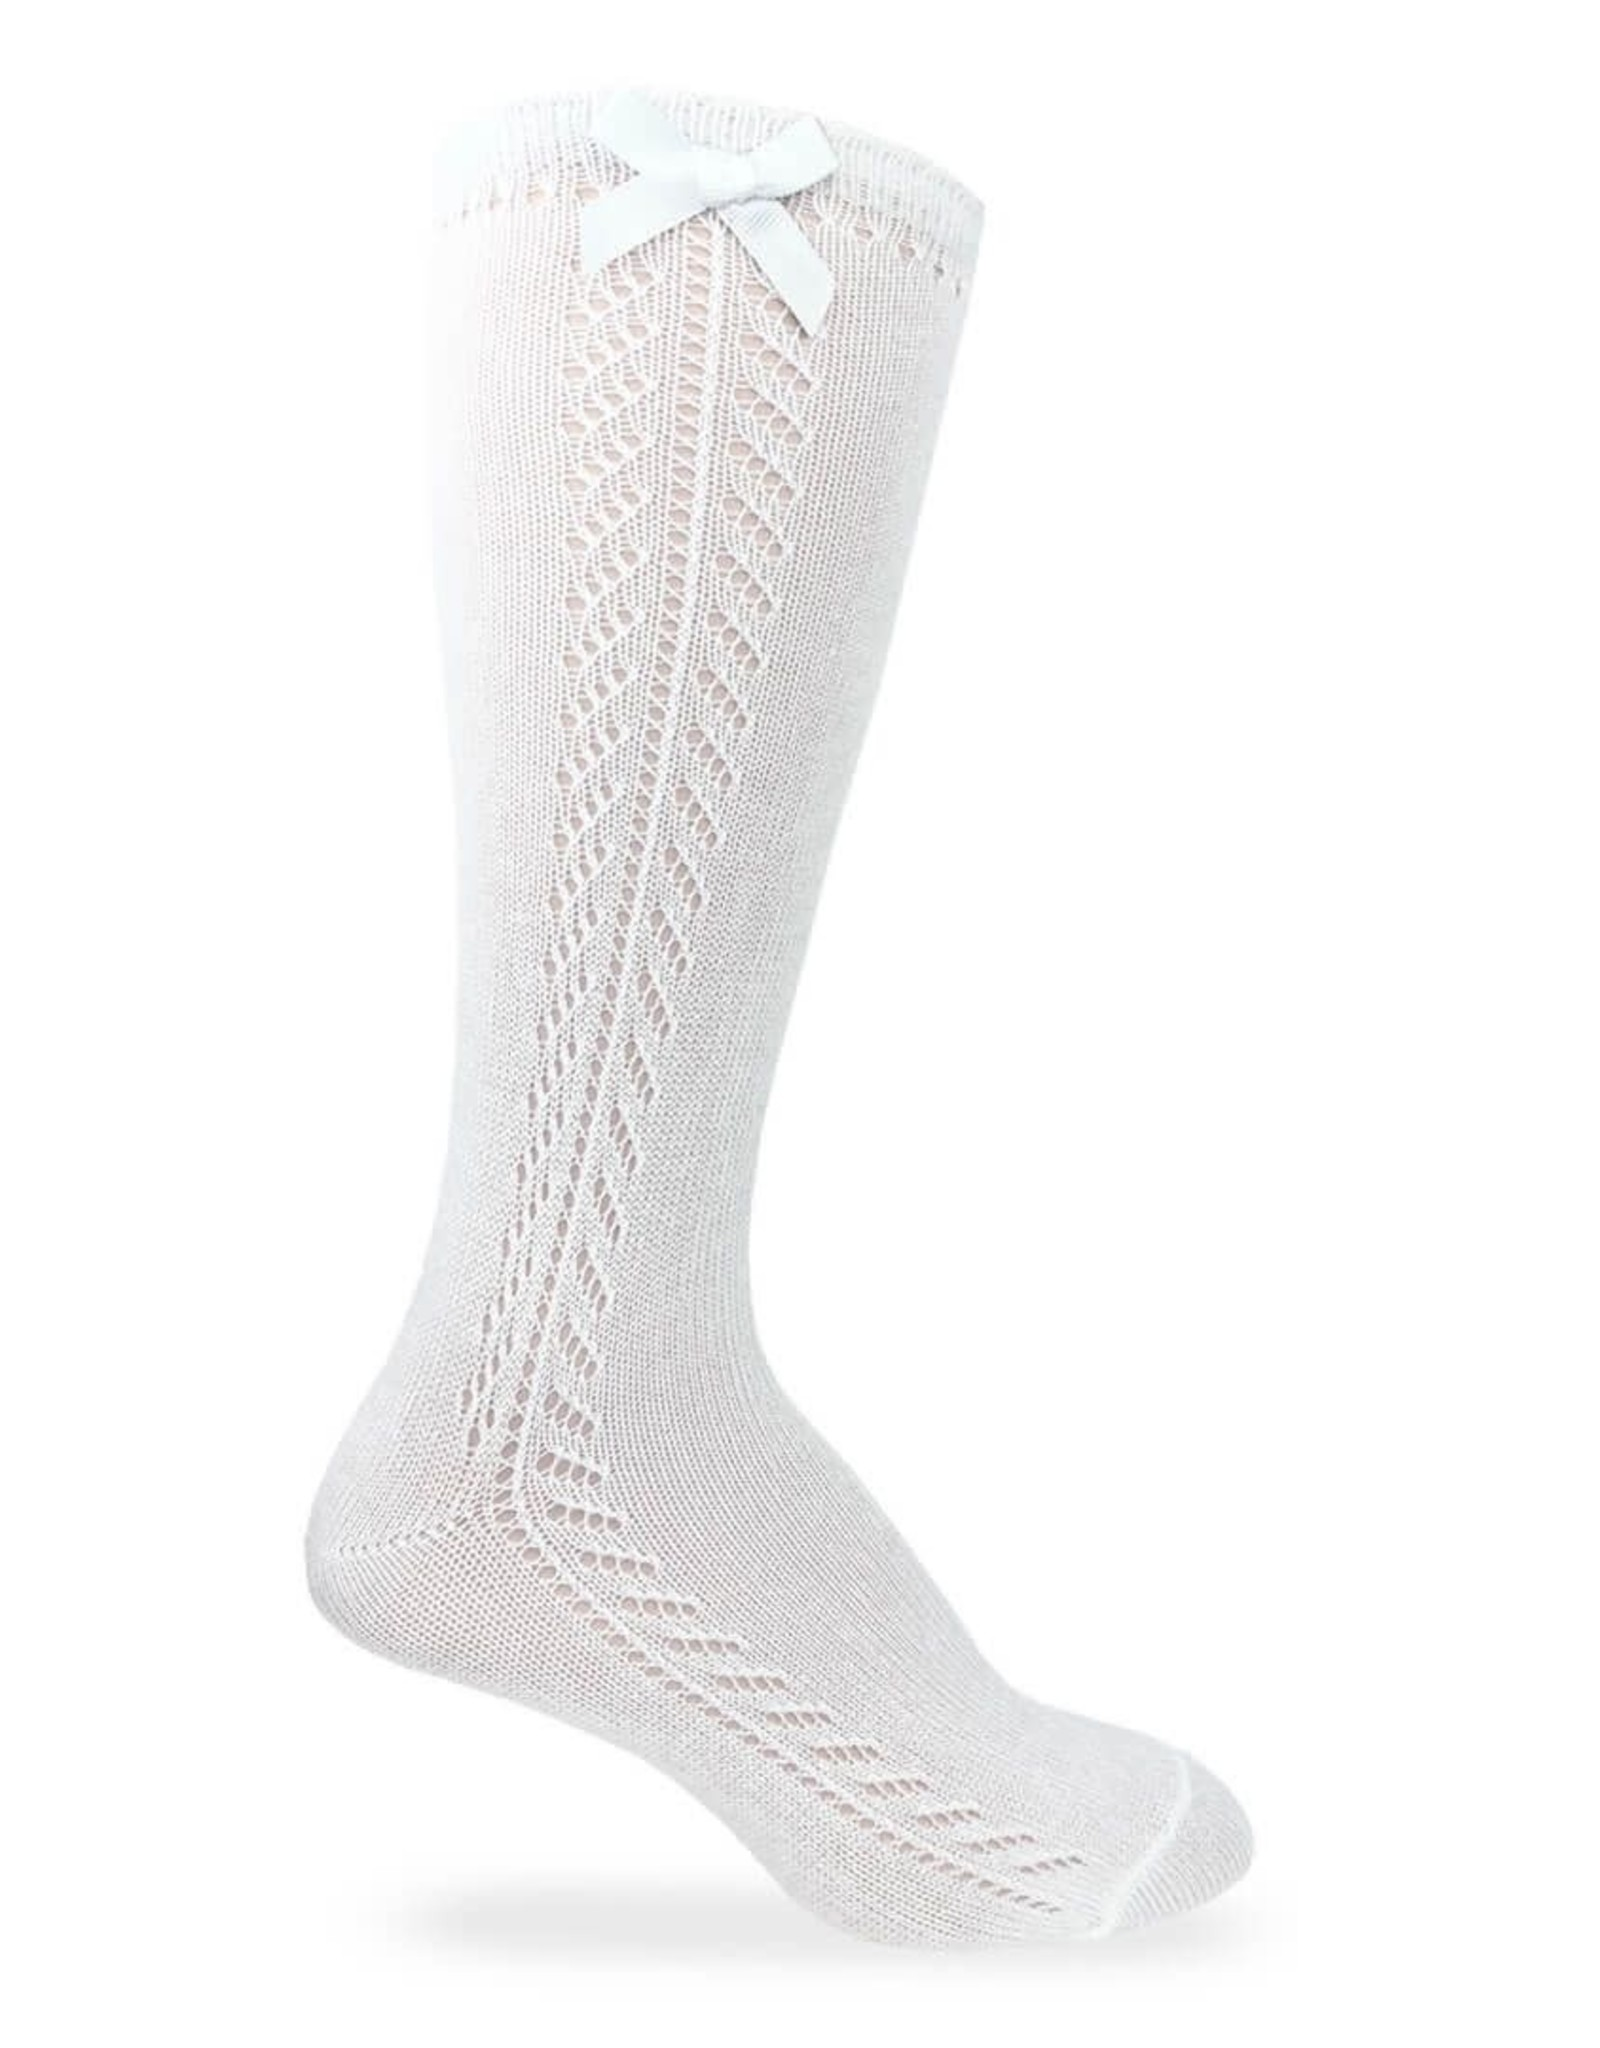 Jefferies Socks Pointelle Bow Knee High Socks in White